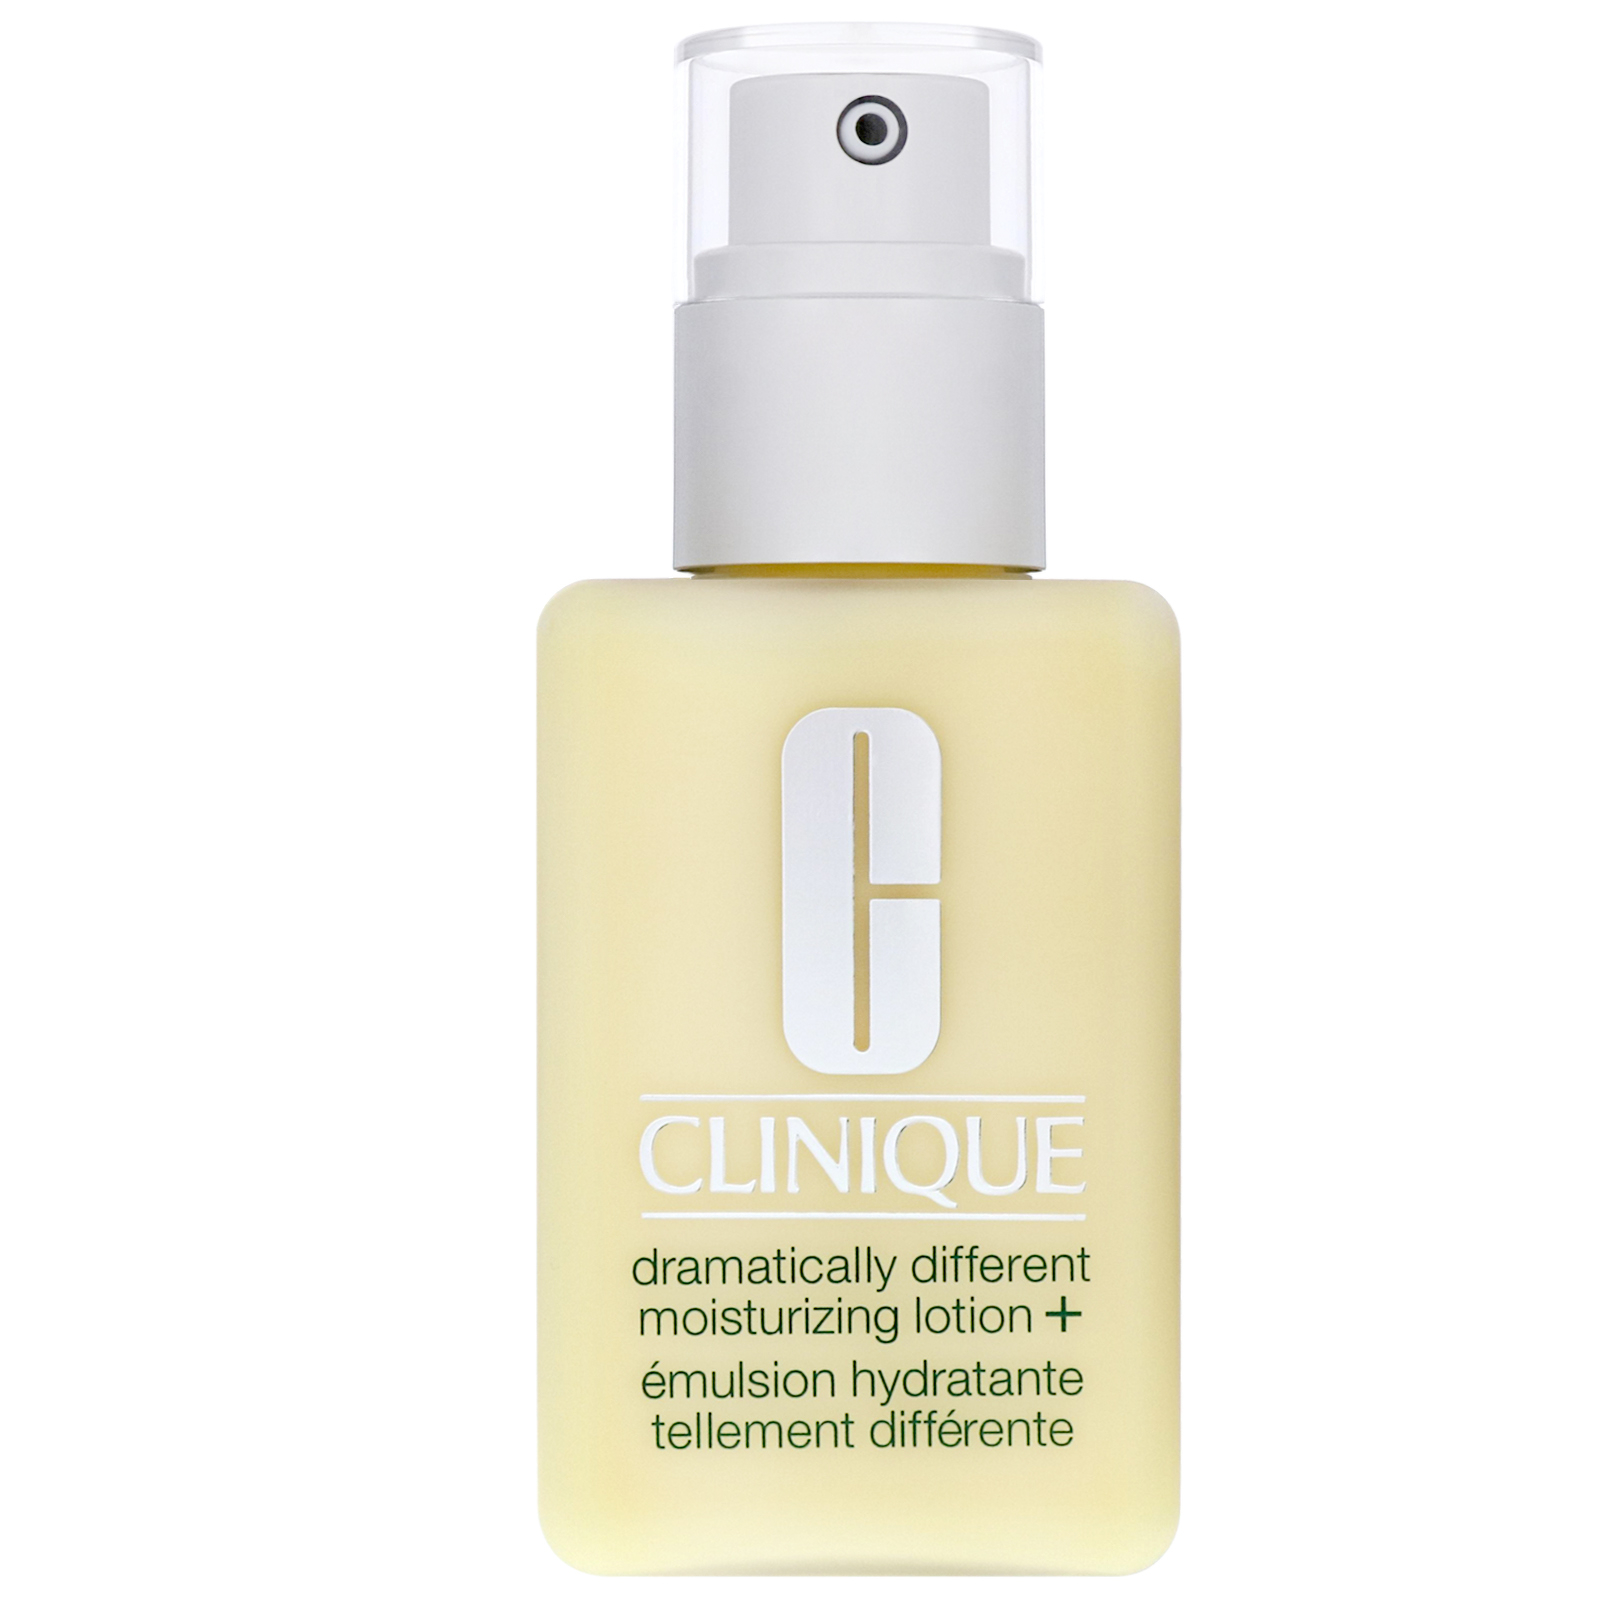 Clinique Moisturisers Dramatically Different Moisturizing Lotion+ (Pump) for Very Dry to Dry Combination Skin 125ml / 4.2 fl.oz.